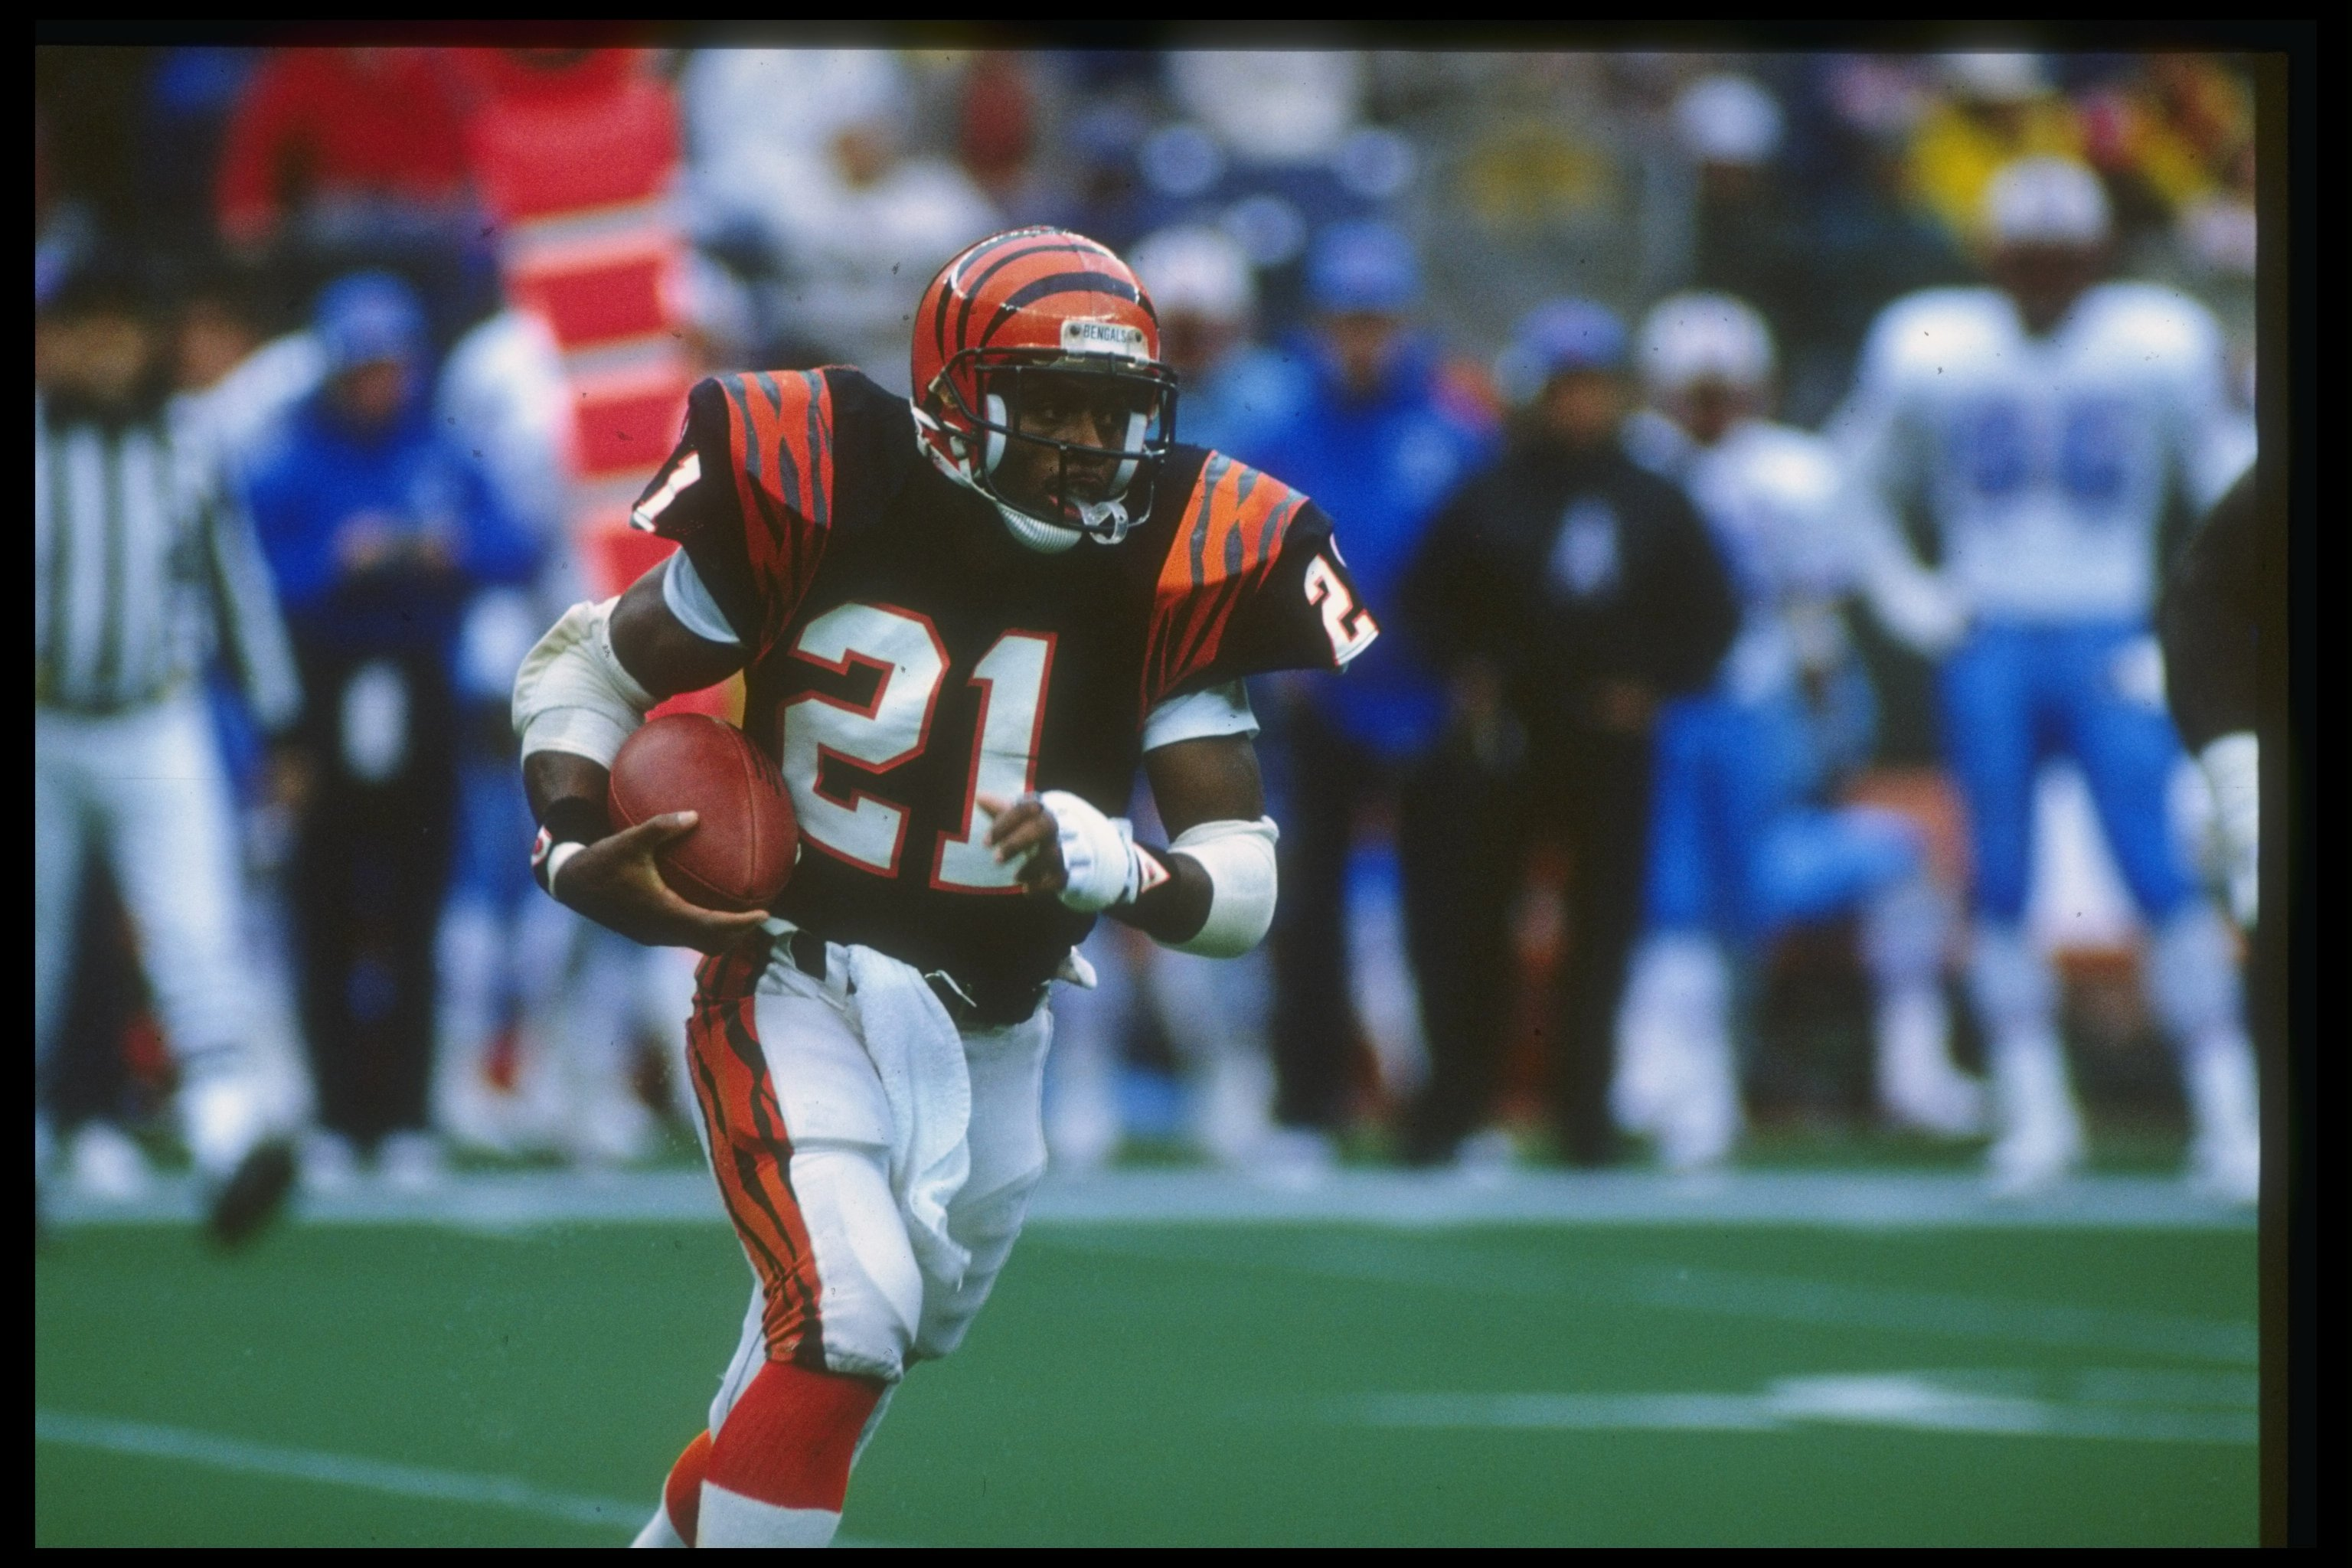 23 Oct 1988: Running back James Brooks of the Cincinnati Bengals moves the ball during a game against the Houston Oilers at Riverfront Stadium in Cincinnati, Ohio. The Bengals won the game, 44-21.